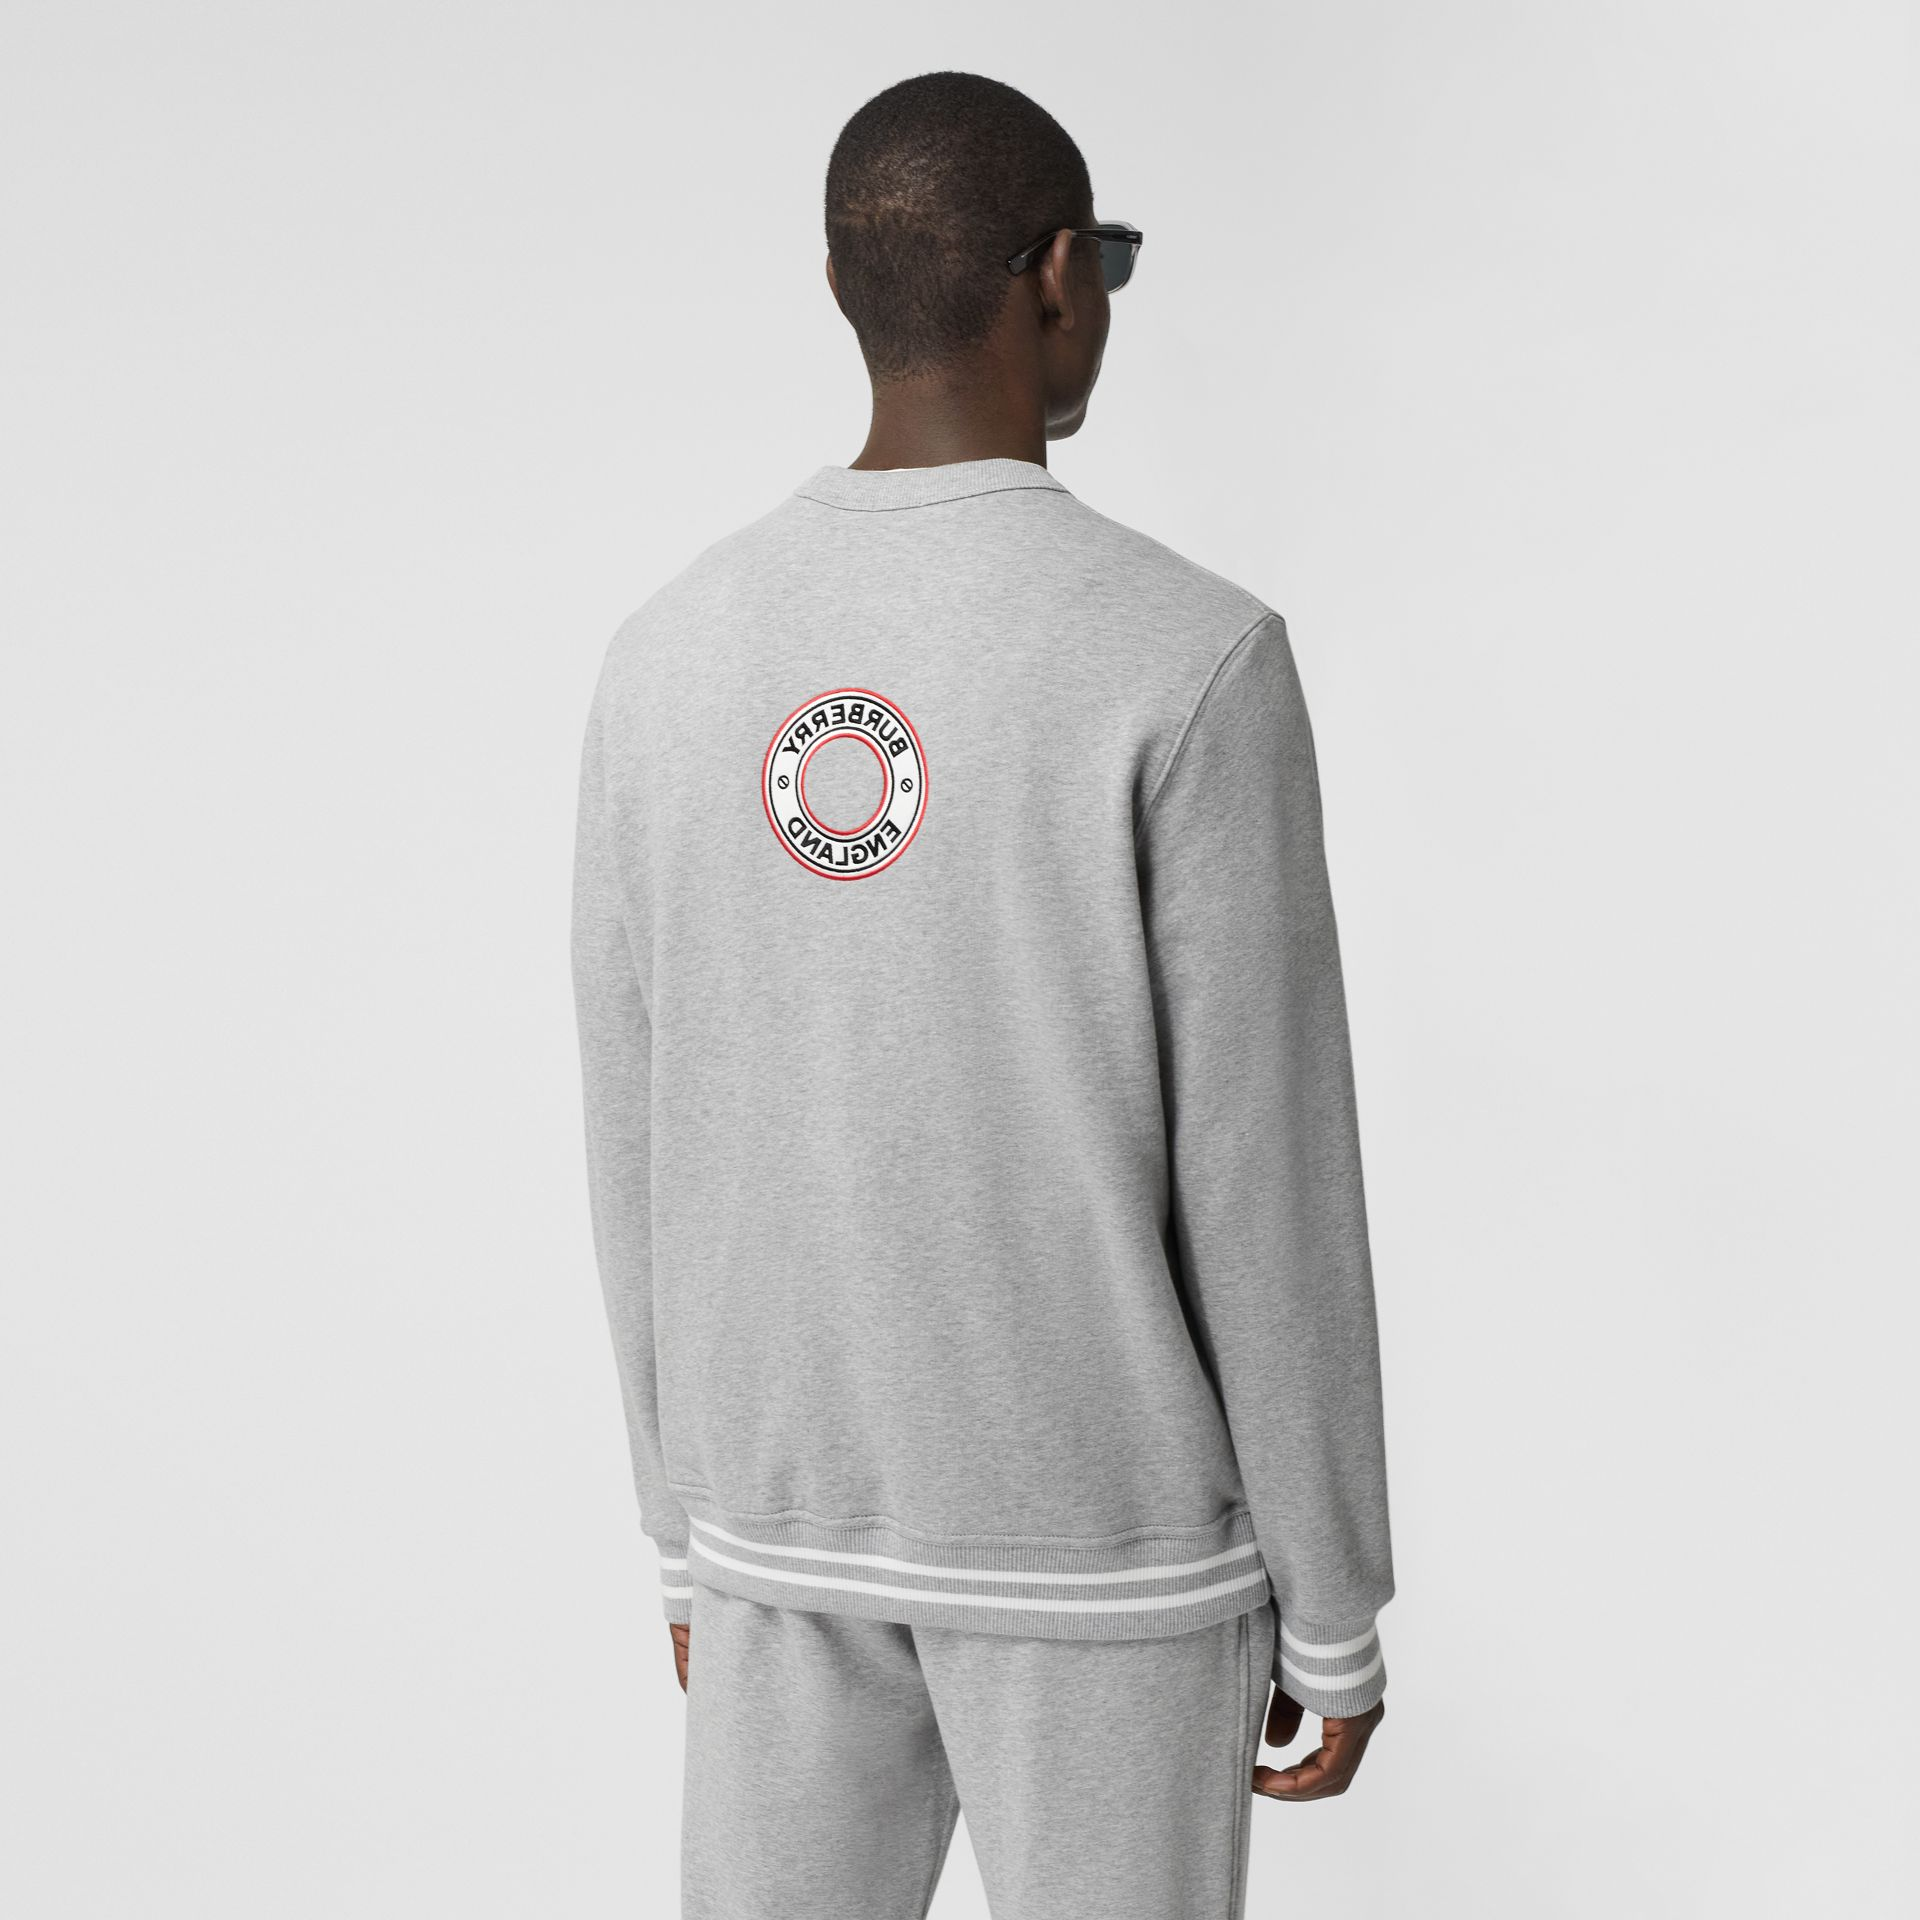 Logo Graphic Appliqué Cotton Sweatshirt in Pale Grey Melange - Men | Burberry - gallery image 2